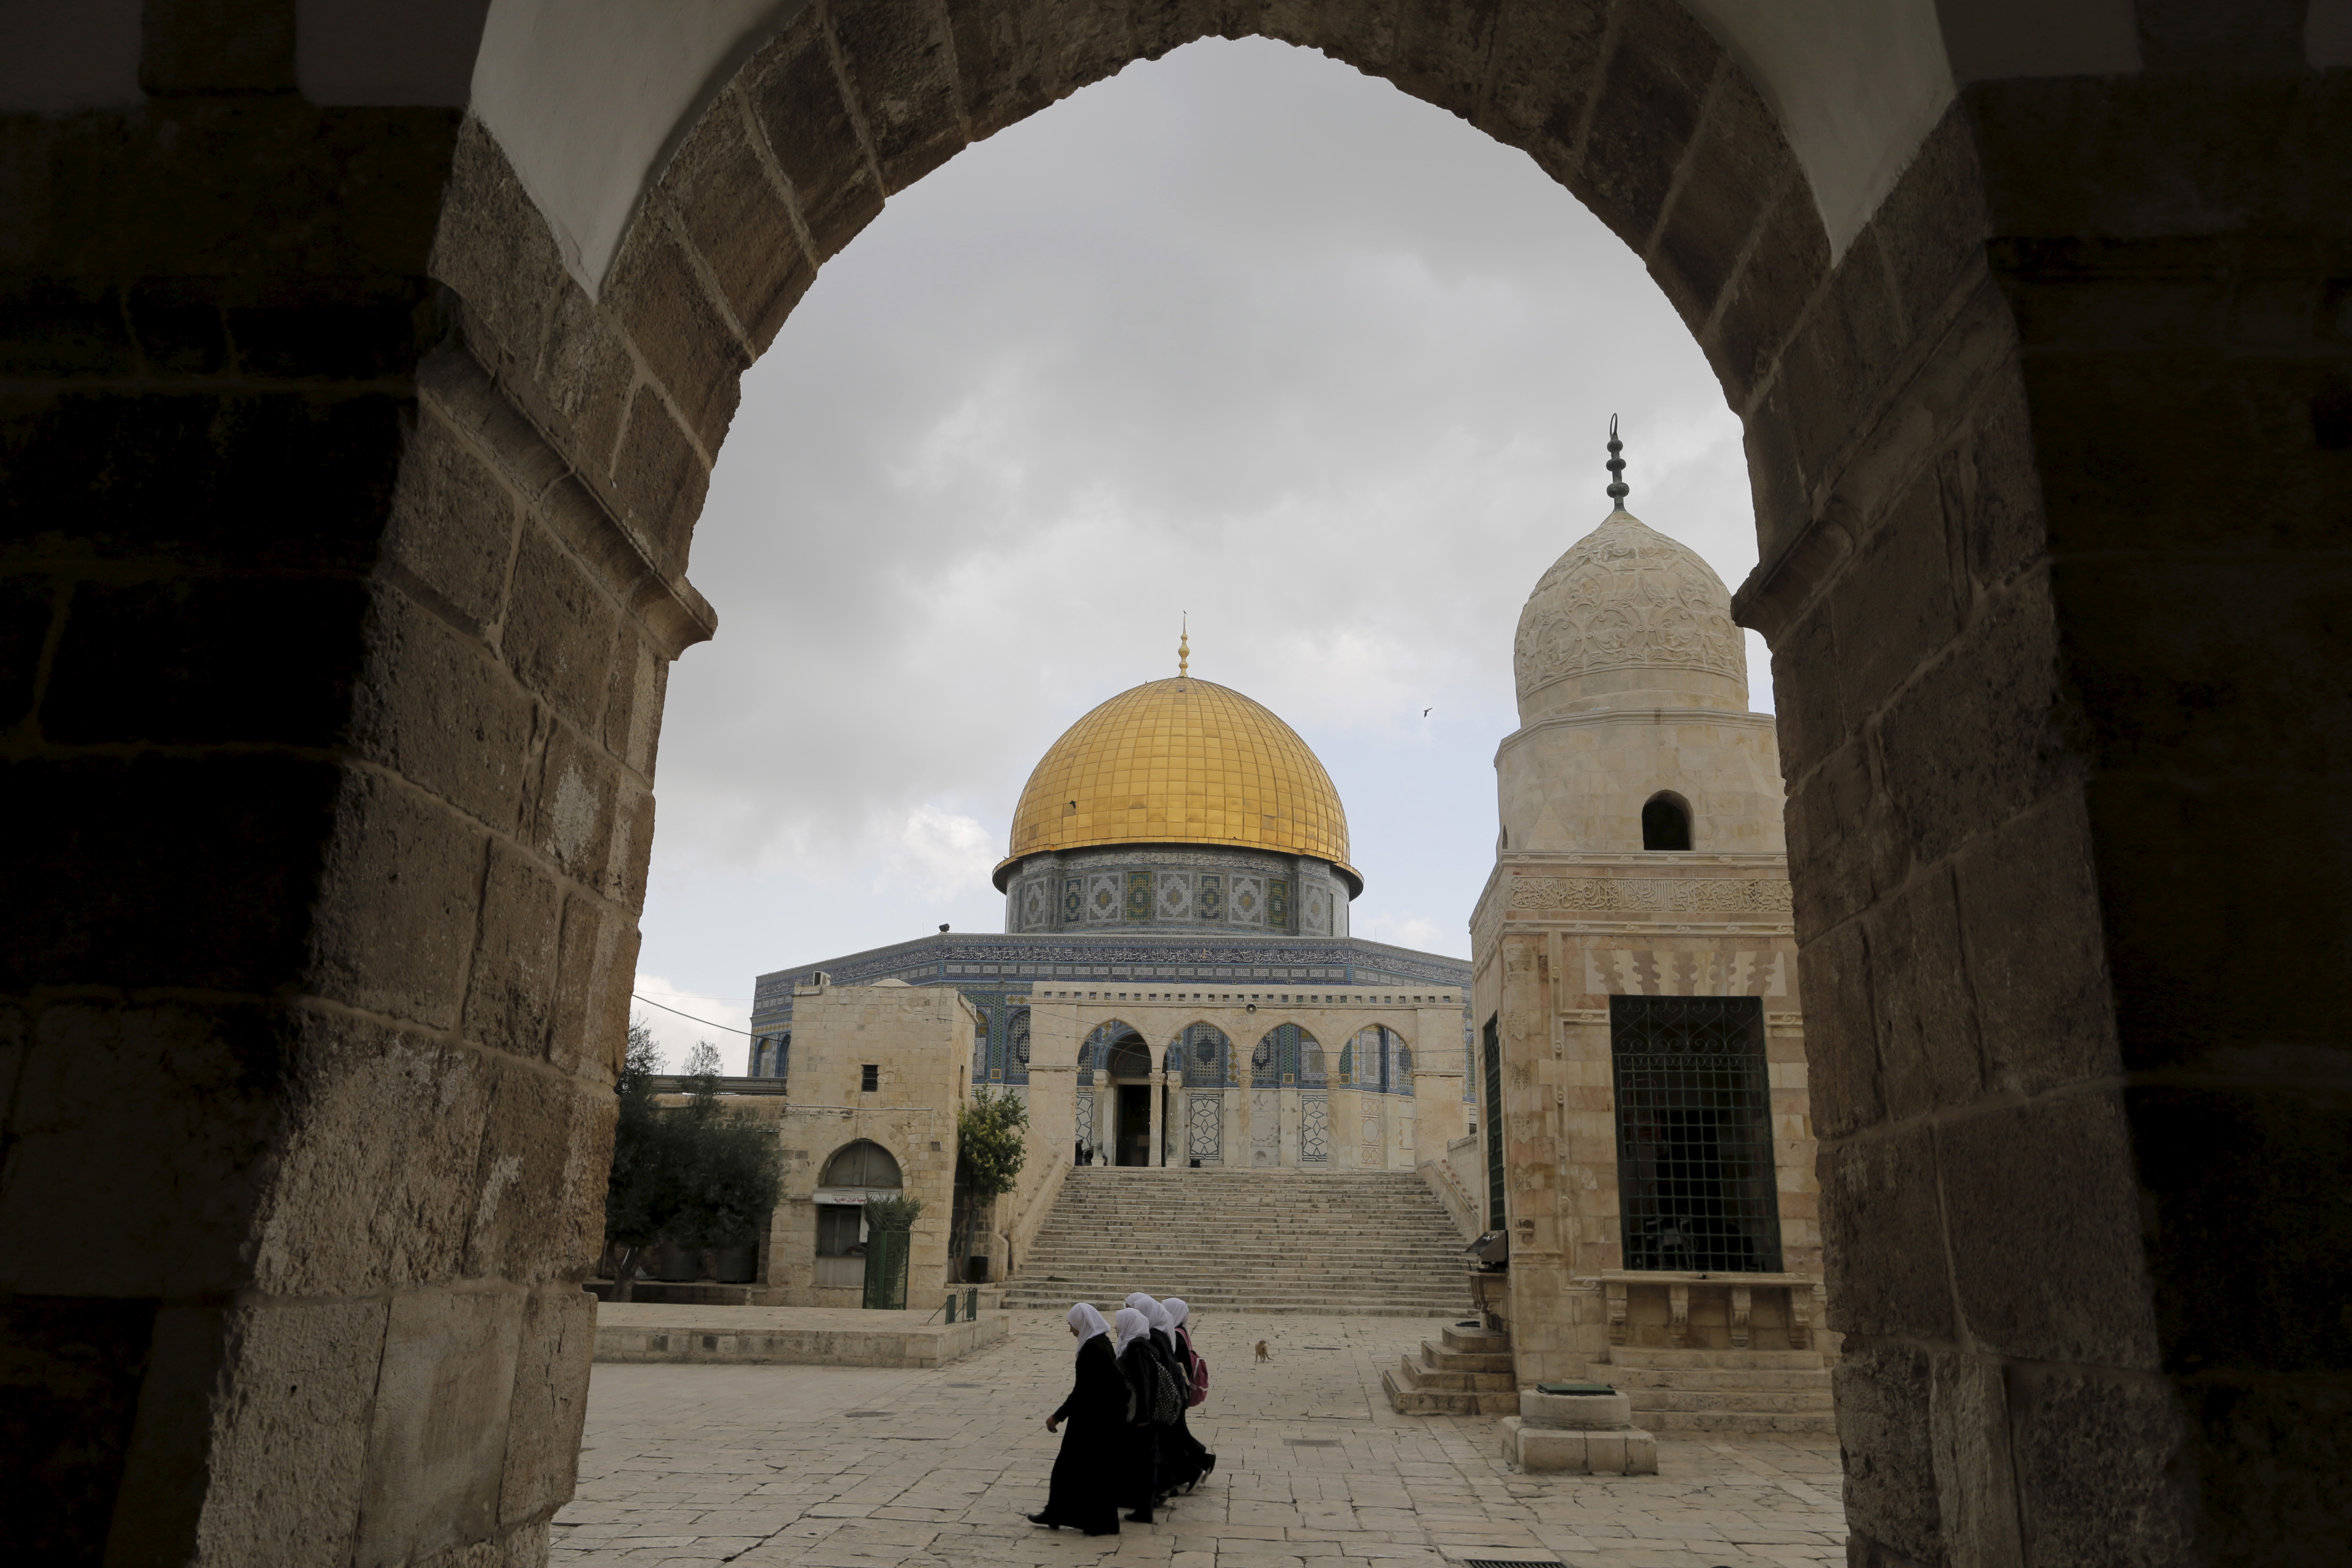 the conflicts between the muslims and christians regarding the holy city of jerusalem